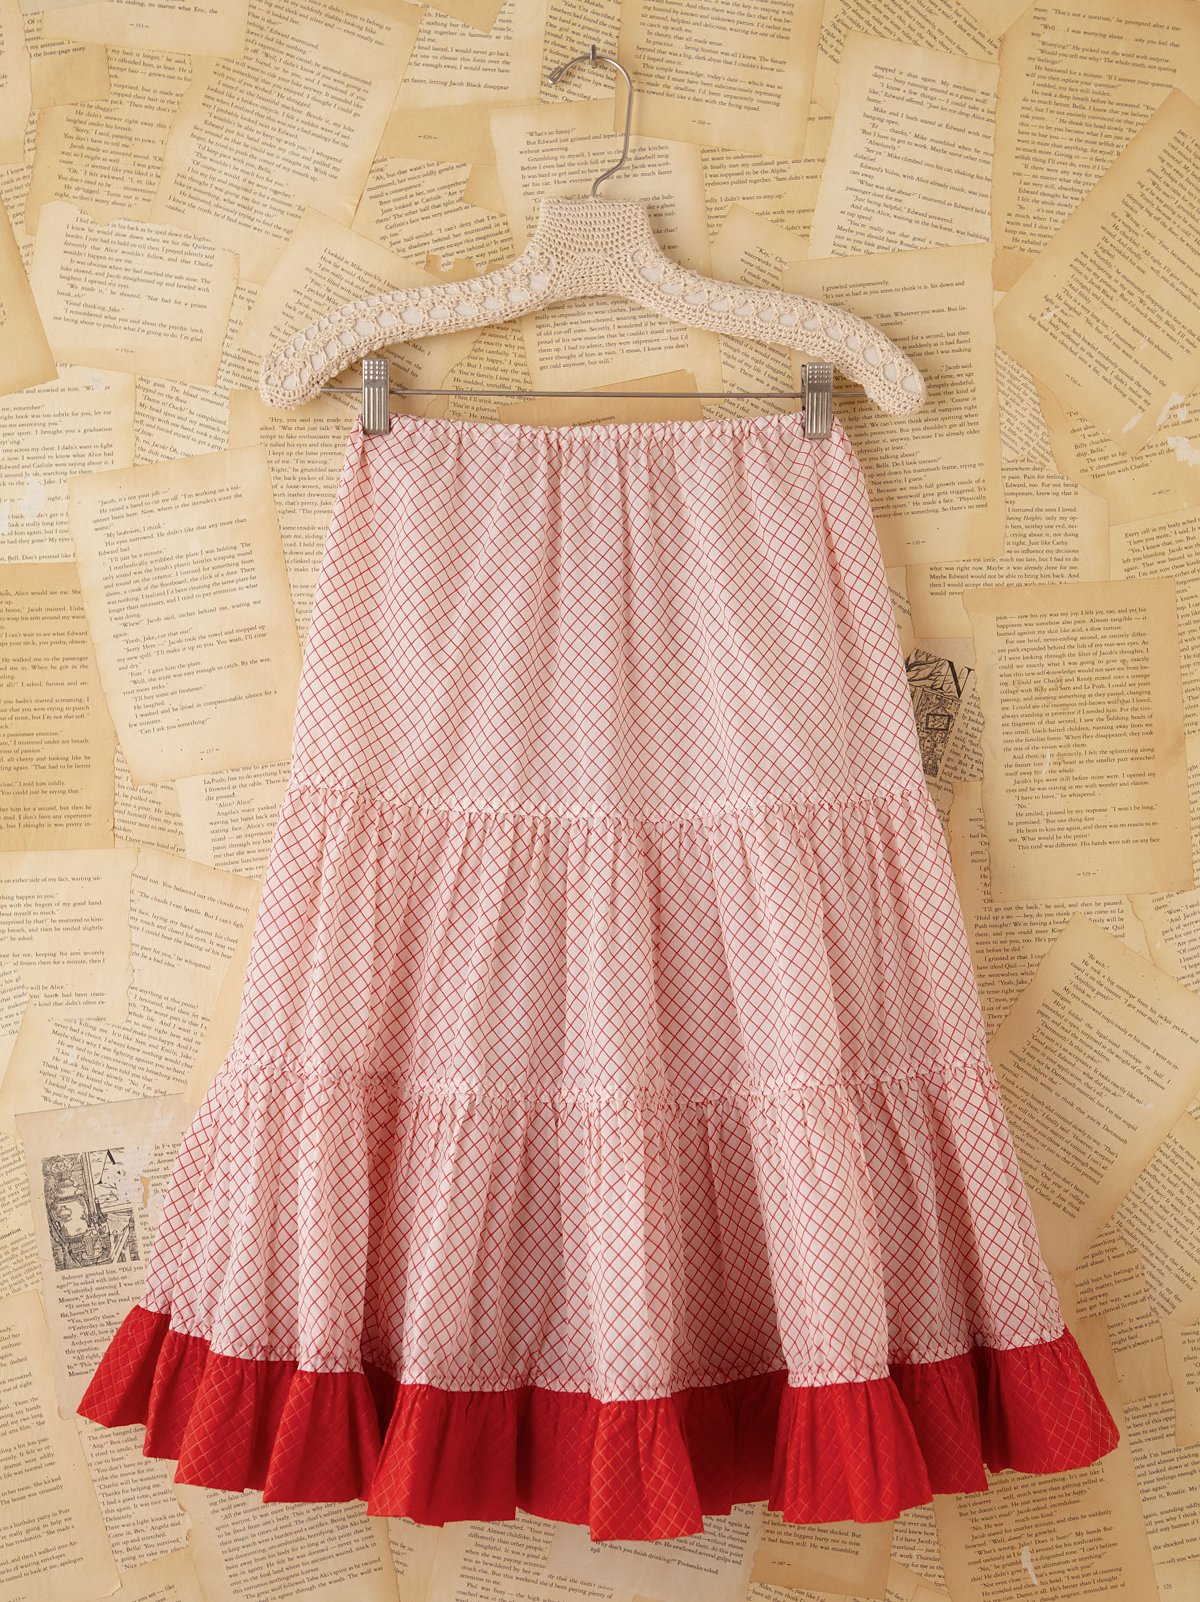 Vintage Red and White Checkered Petticoat Skirt